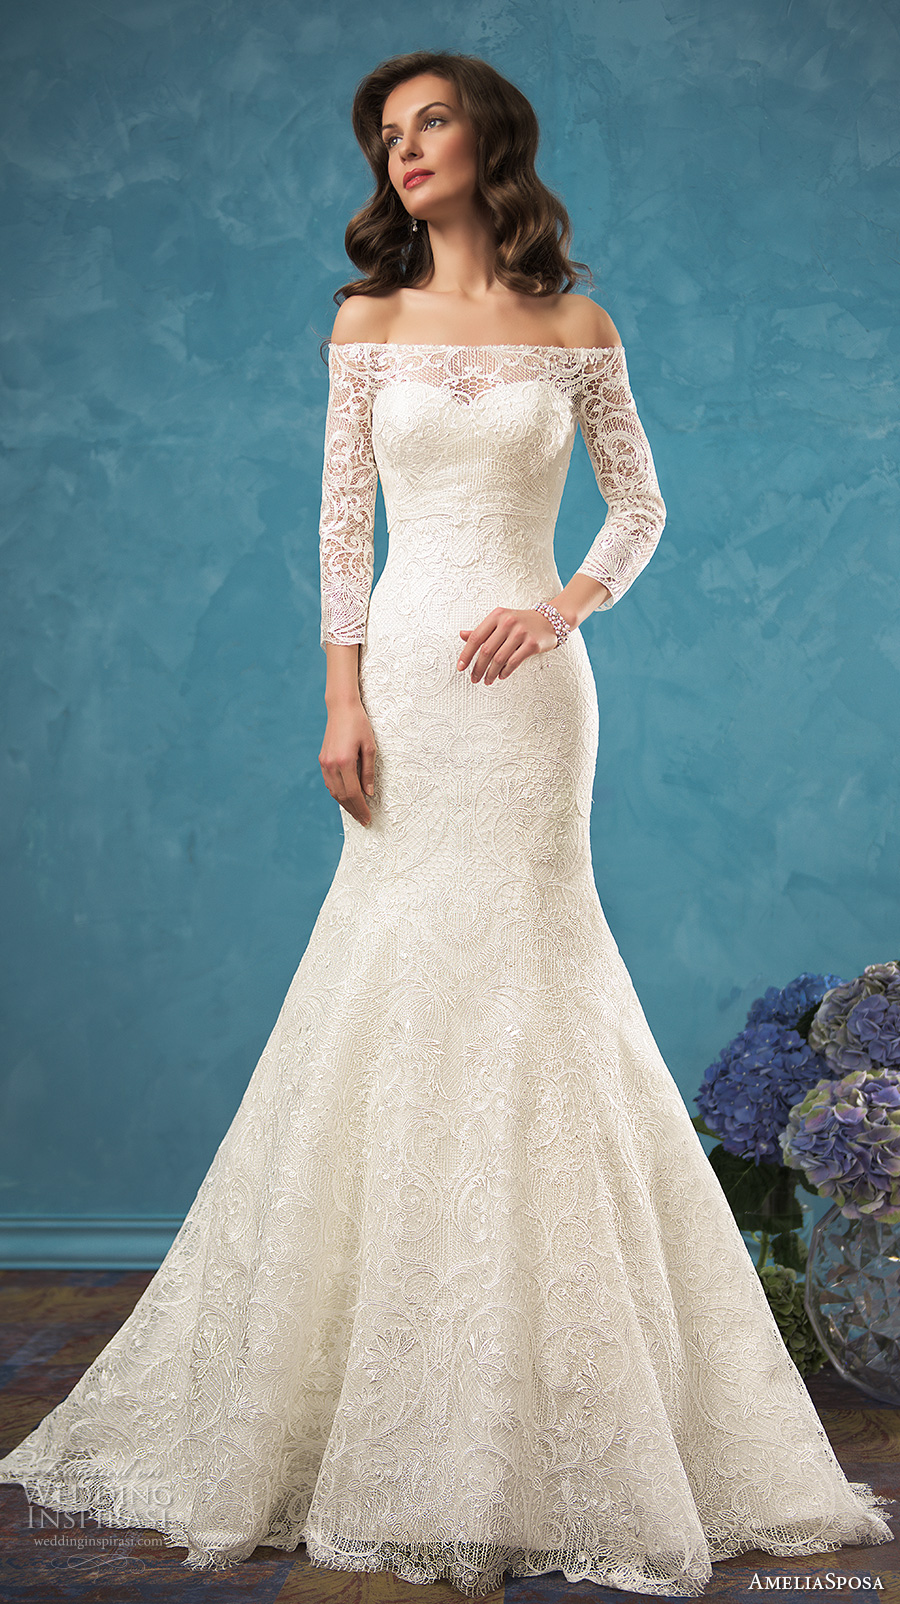 1b42f2ba9f7 amelia sposa 2017 bridal long sleeves illusion off the shoulder sweetheart  neckline fully embellished bodice romantic